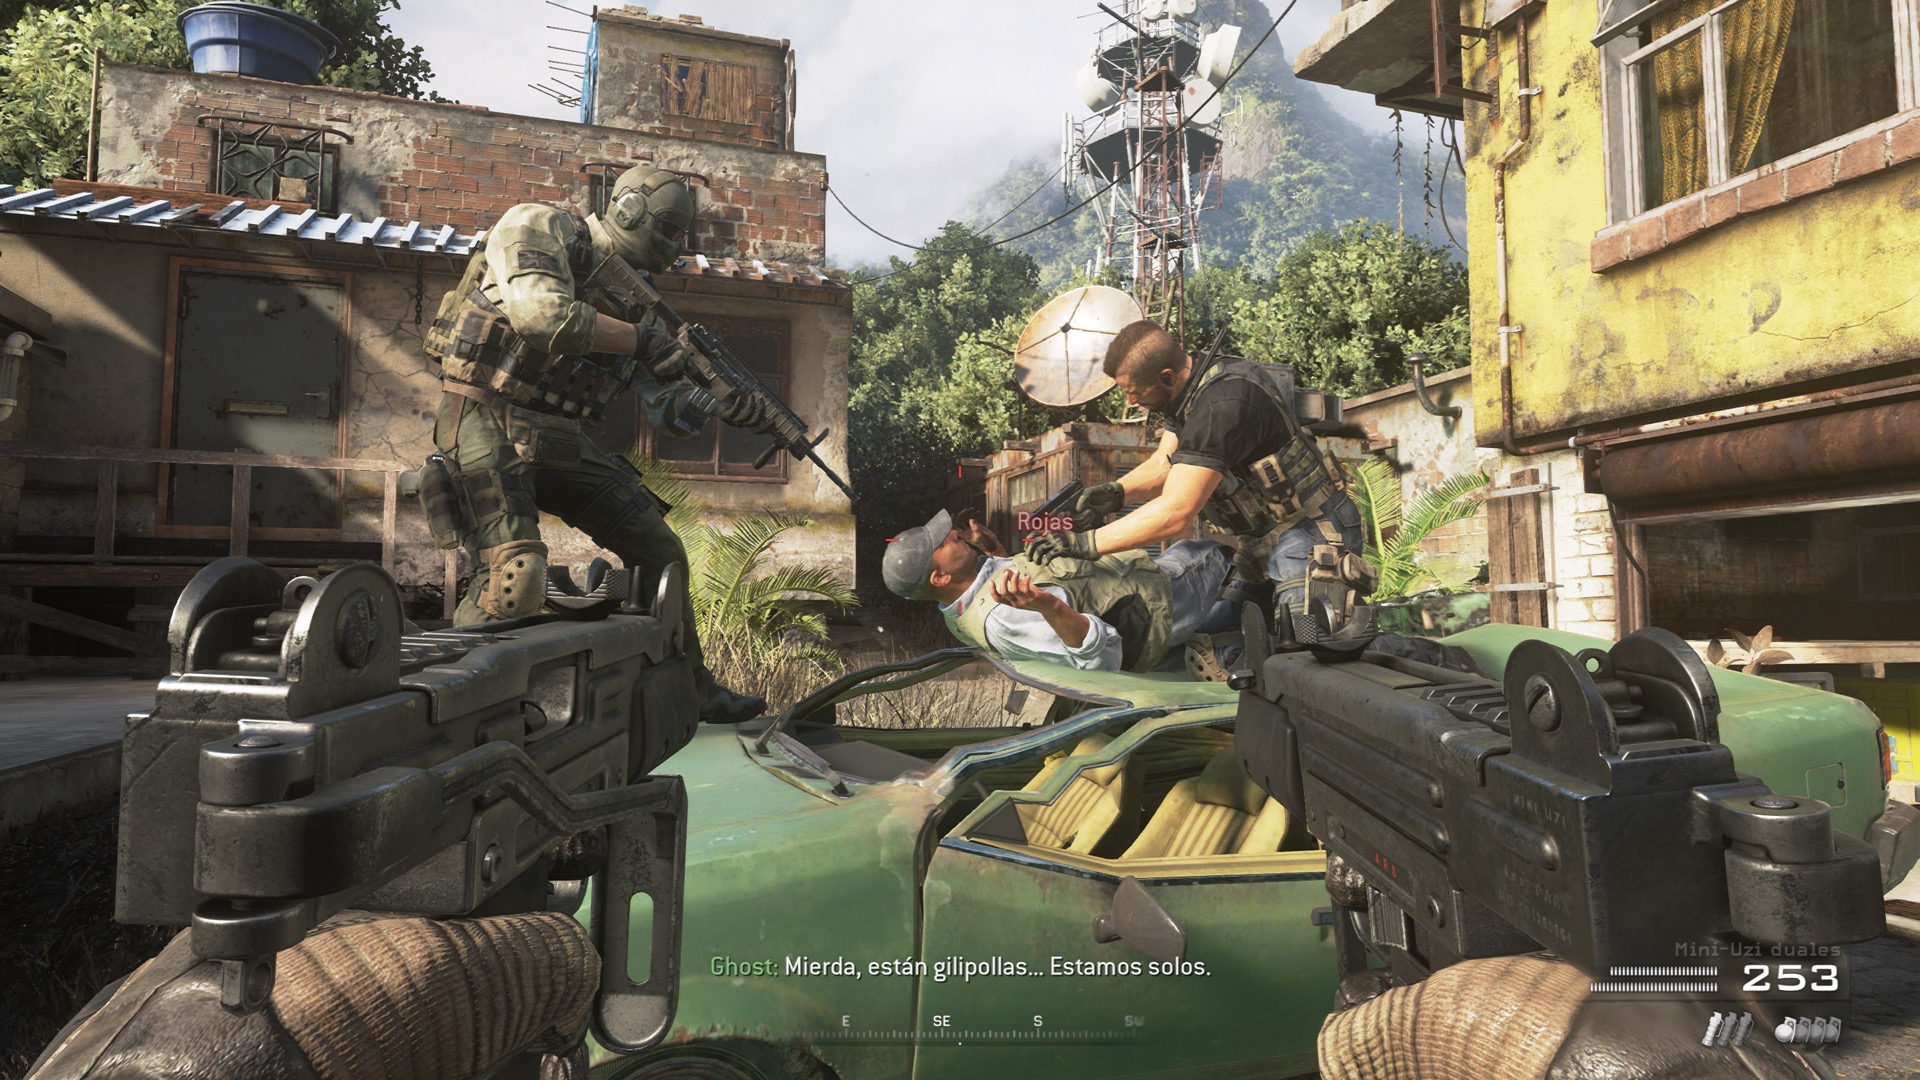 Análisis de Call of Duty Modern Warfare 2 Remastered